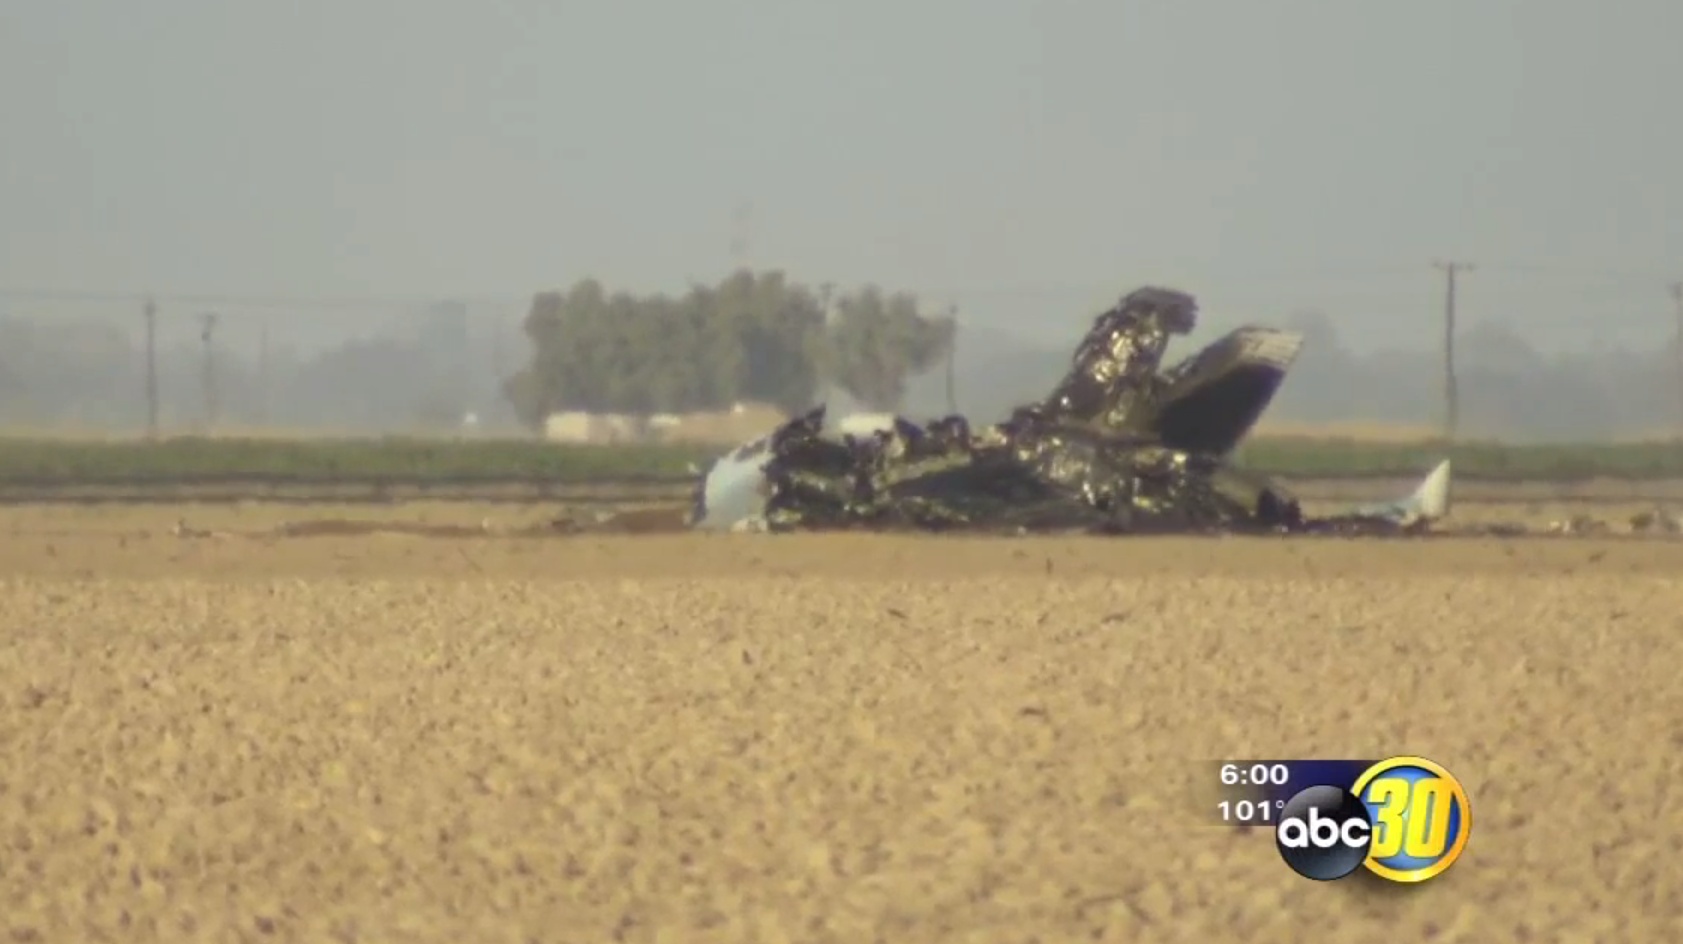 Image of the crashed Super Hornet via KFSN ABC 30